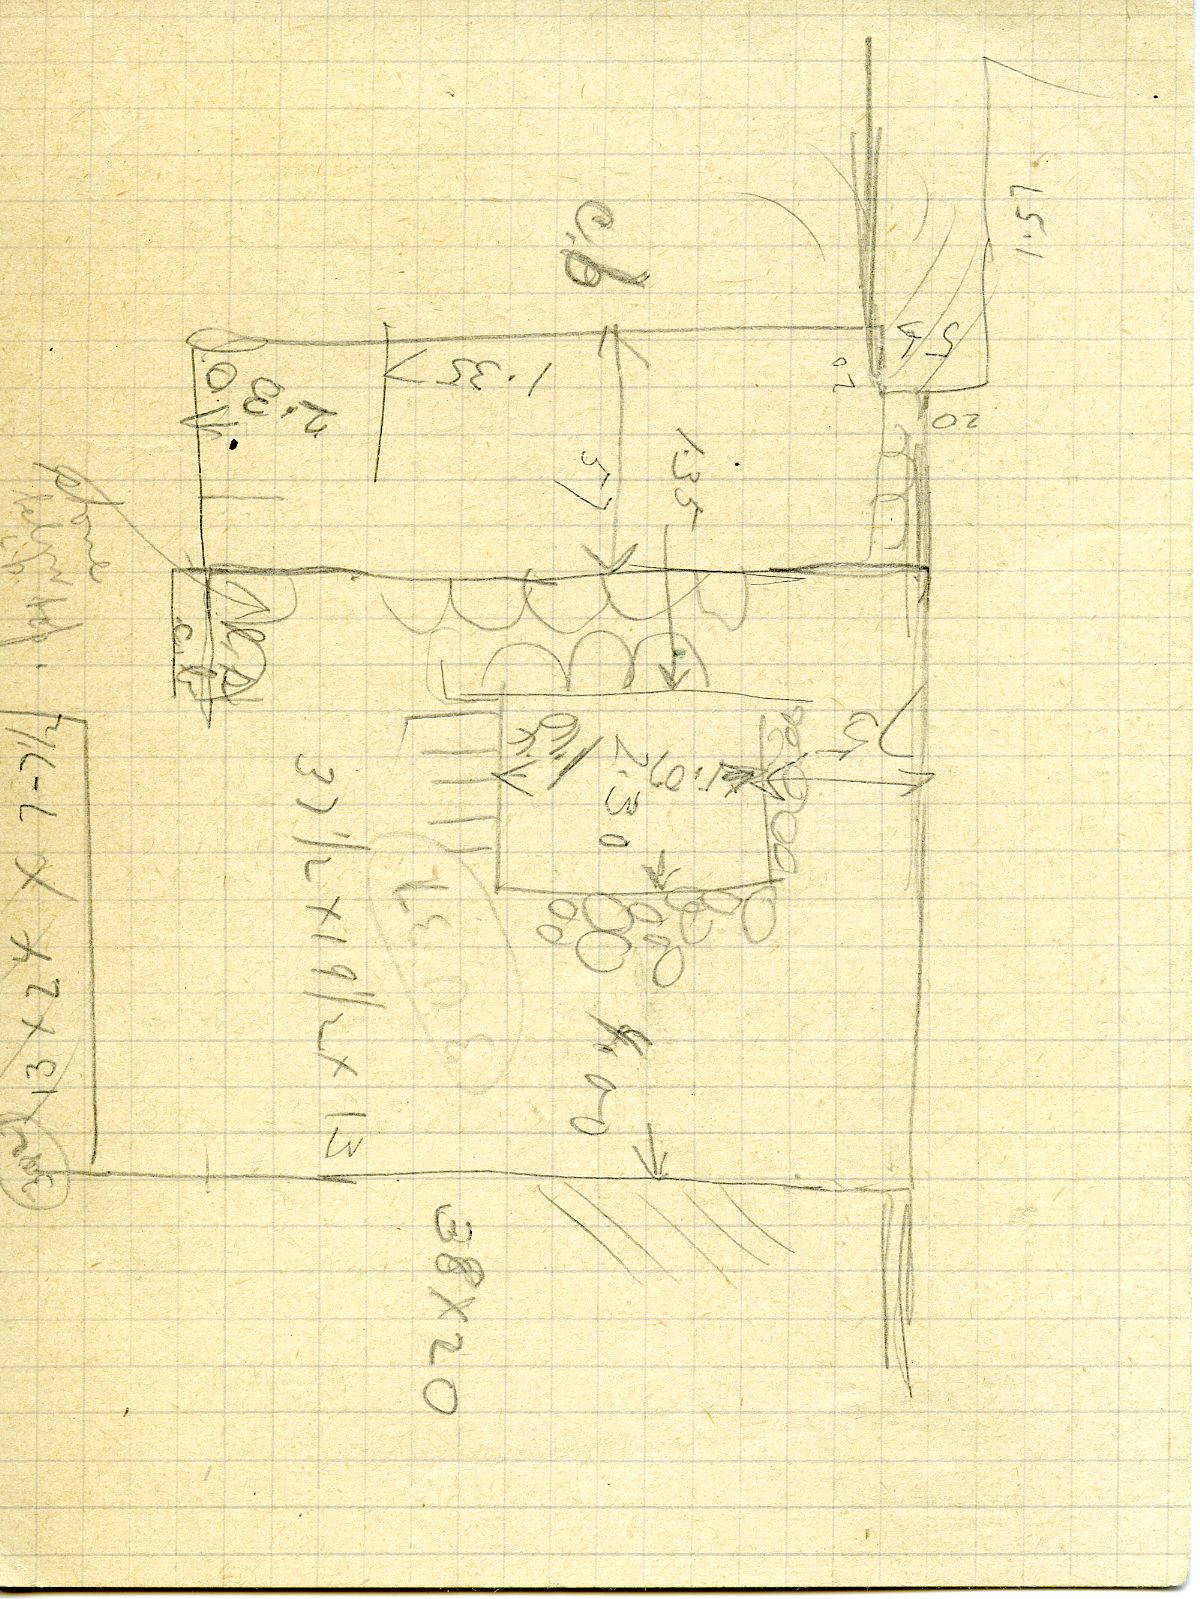 Maps and plans: G 3037(?), Sketch plan